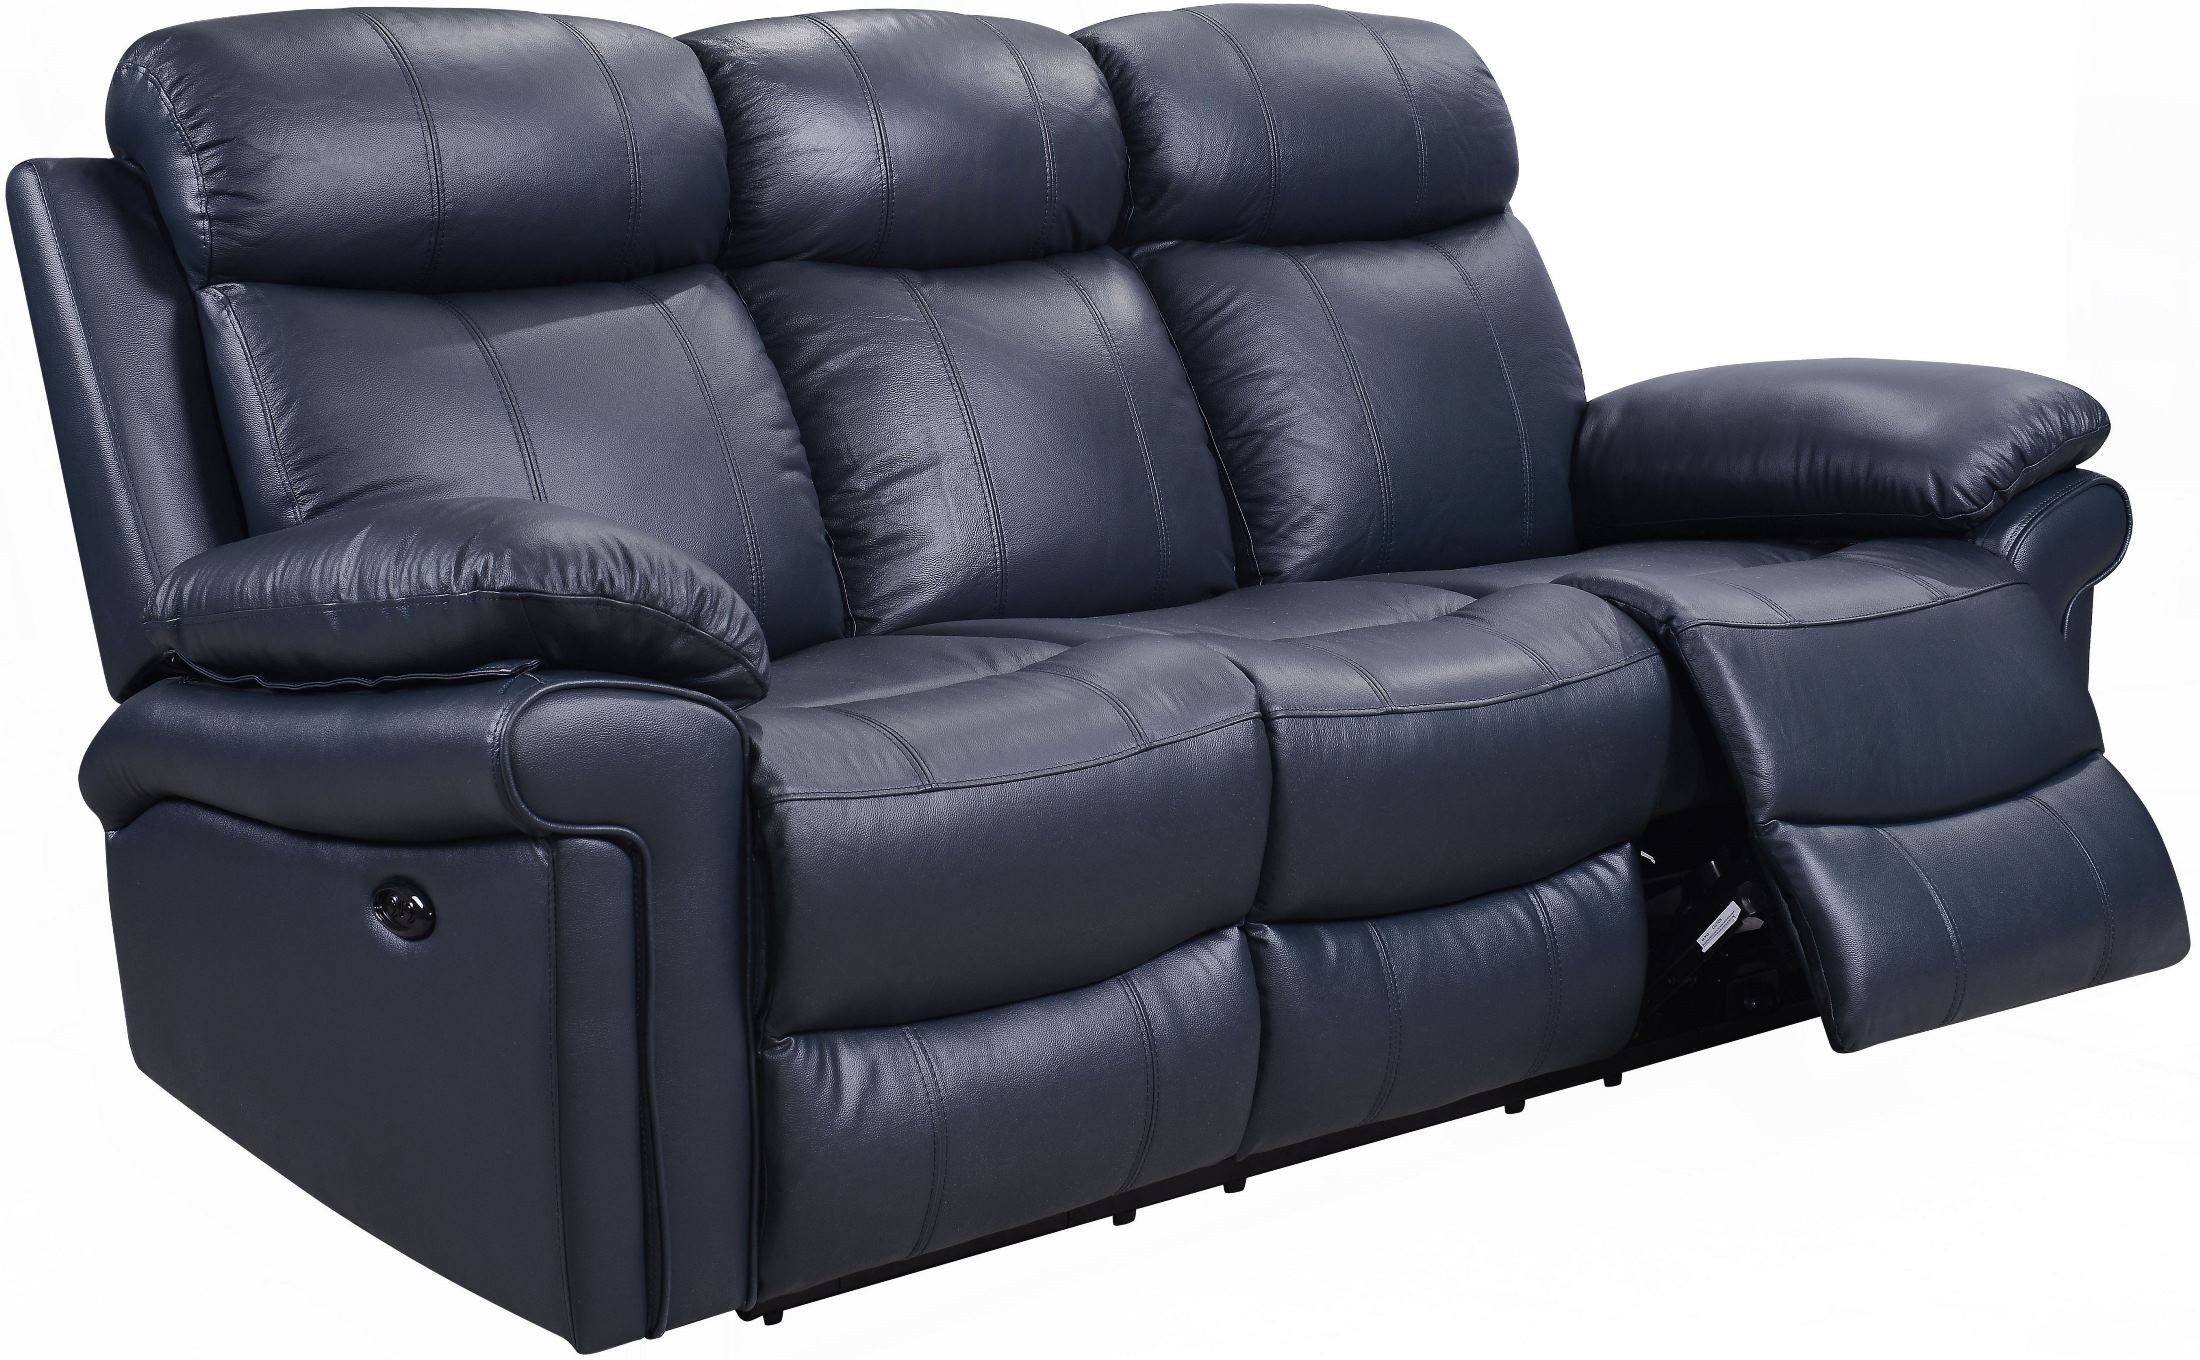 Shae joplin blue leather power reclining sofa 1555 e2117 for Blue leather reclining sofa